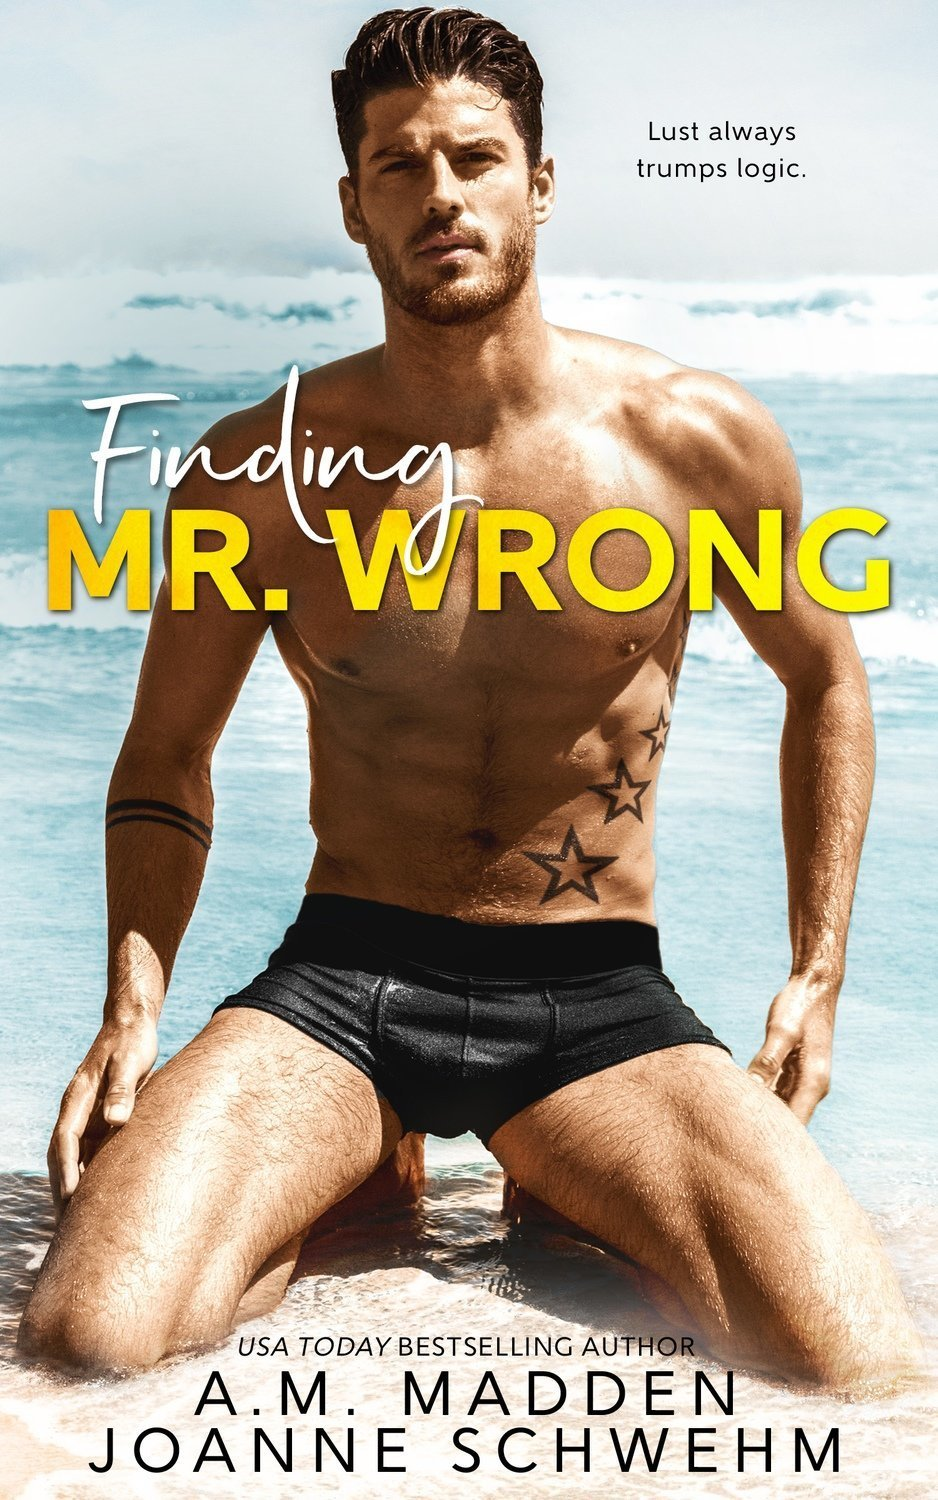 Finding Mr. Wrong - Romance